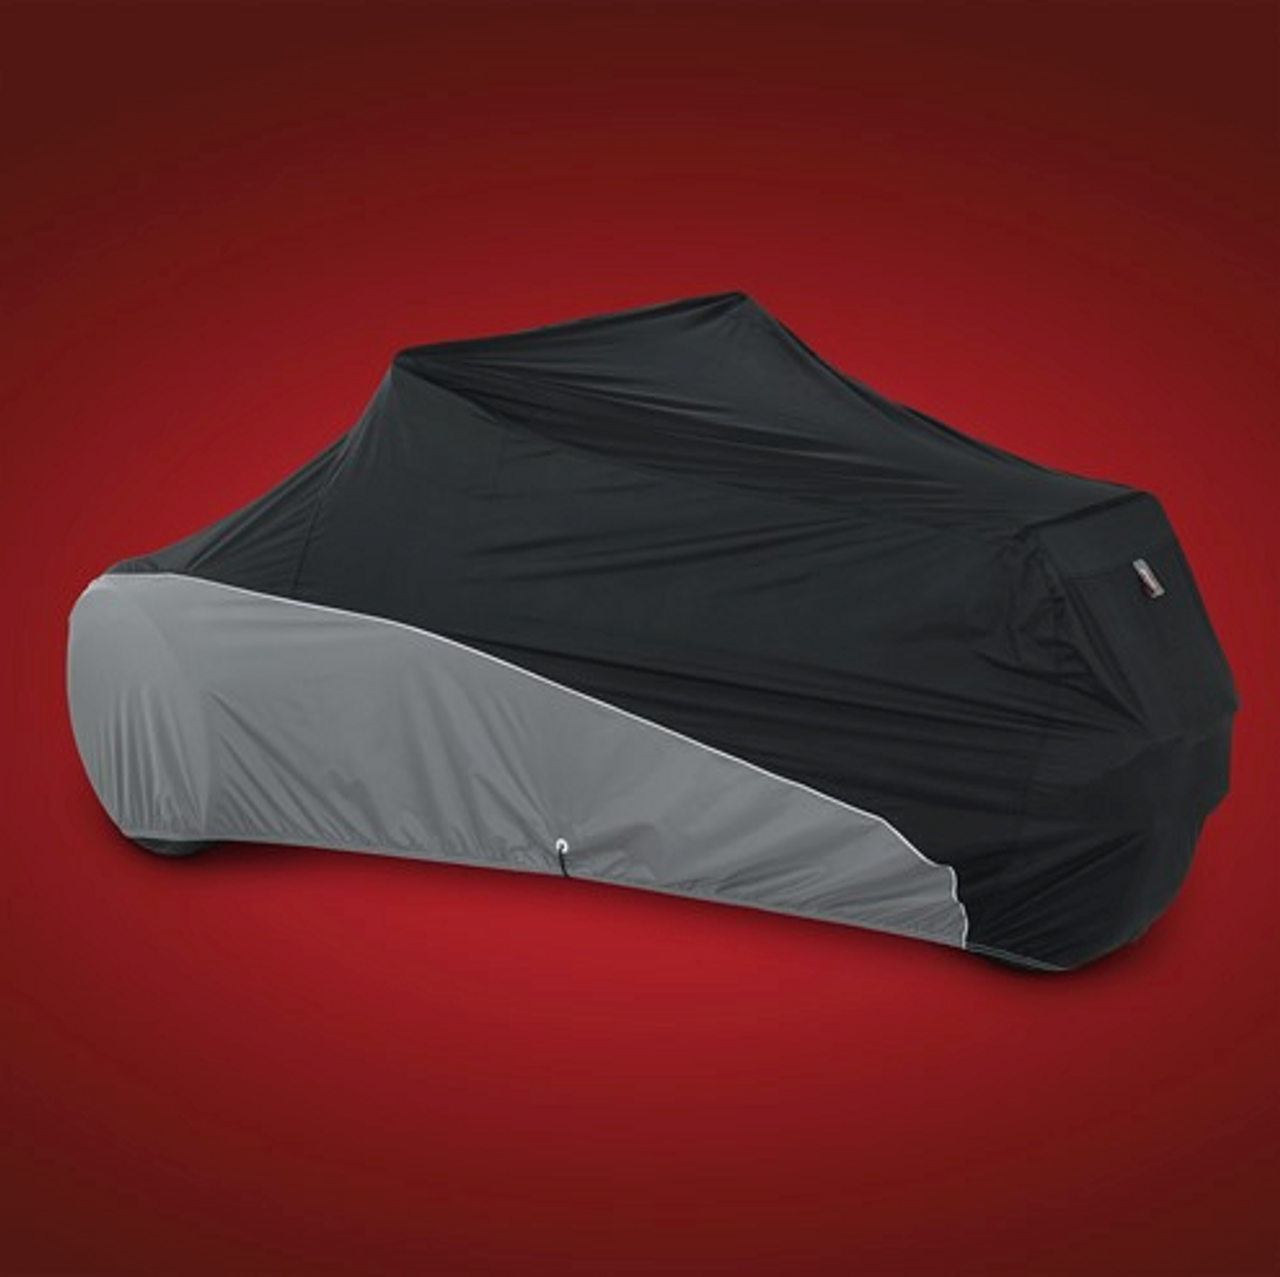 UltraGard® Classic Cover for Can-Am Ryker (SC-4-474BC) Black over Charcoal Cover On Can-Am Ryker (rear view)